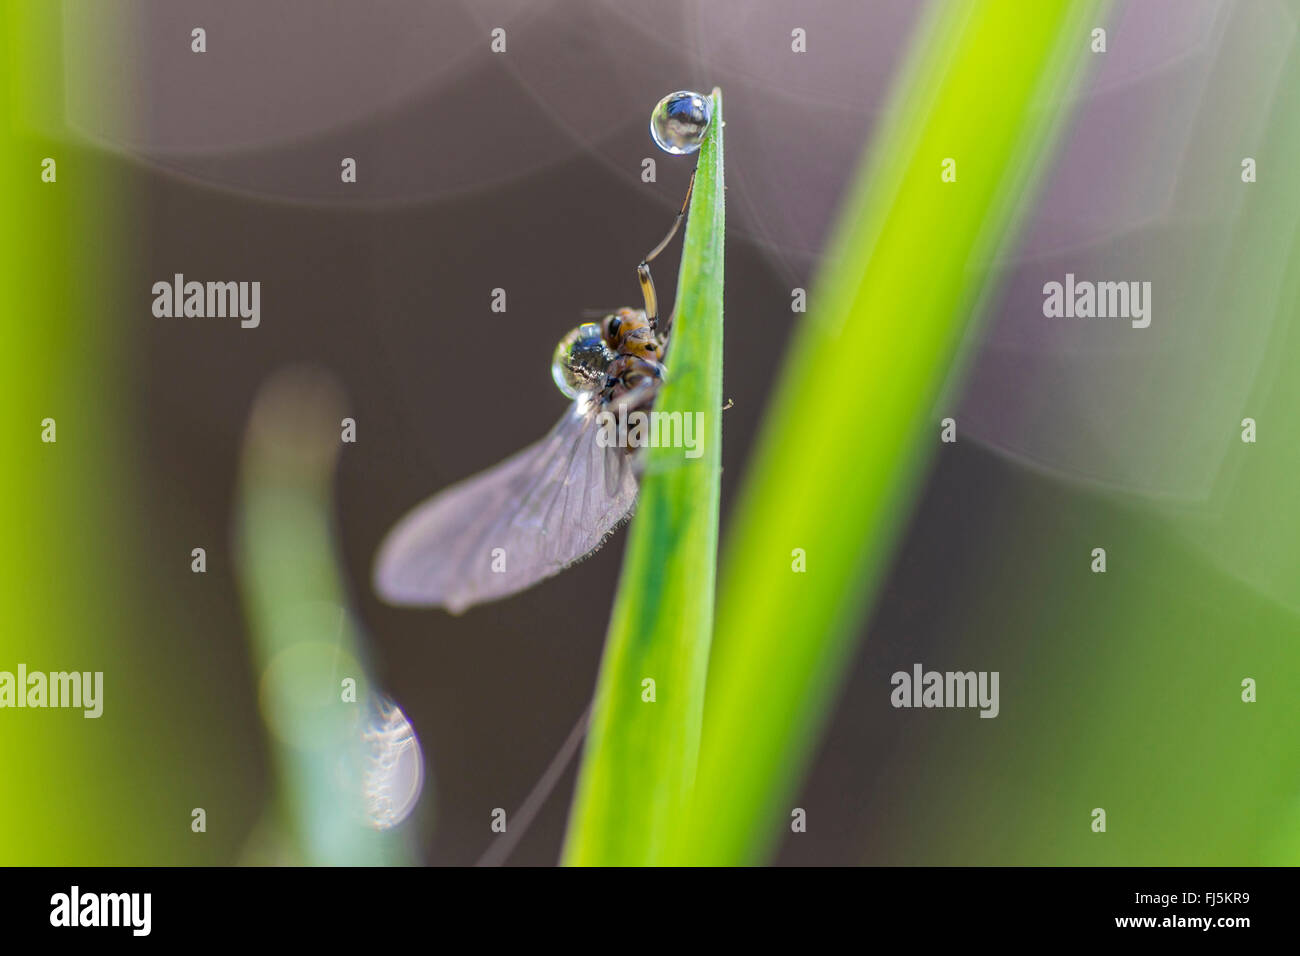 insect on a leaf with a drop of water, Germany, Saxony, Vogtlaendische Schweiz - Stock Image